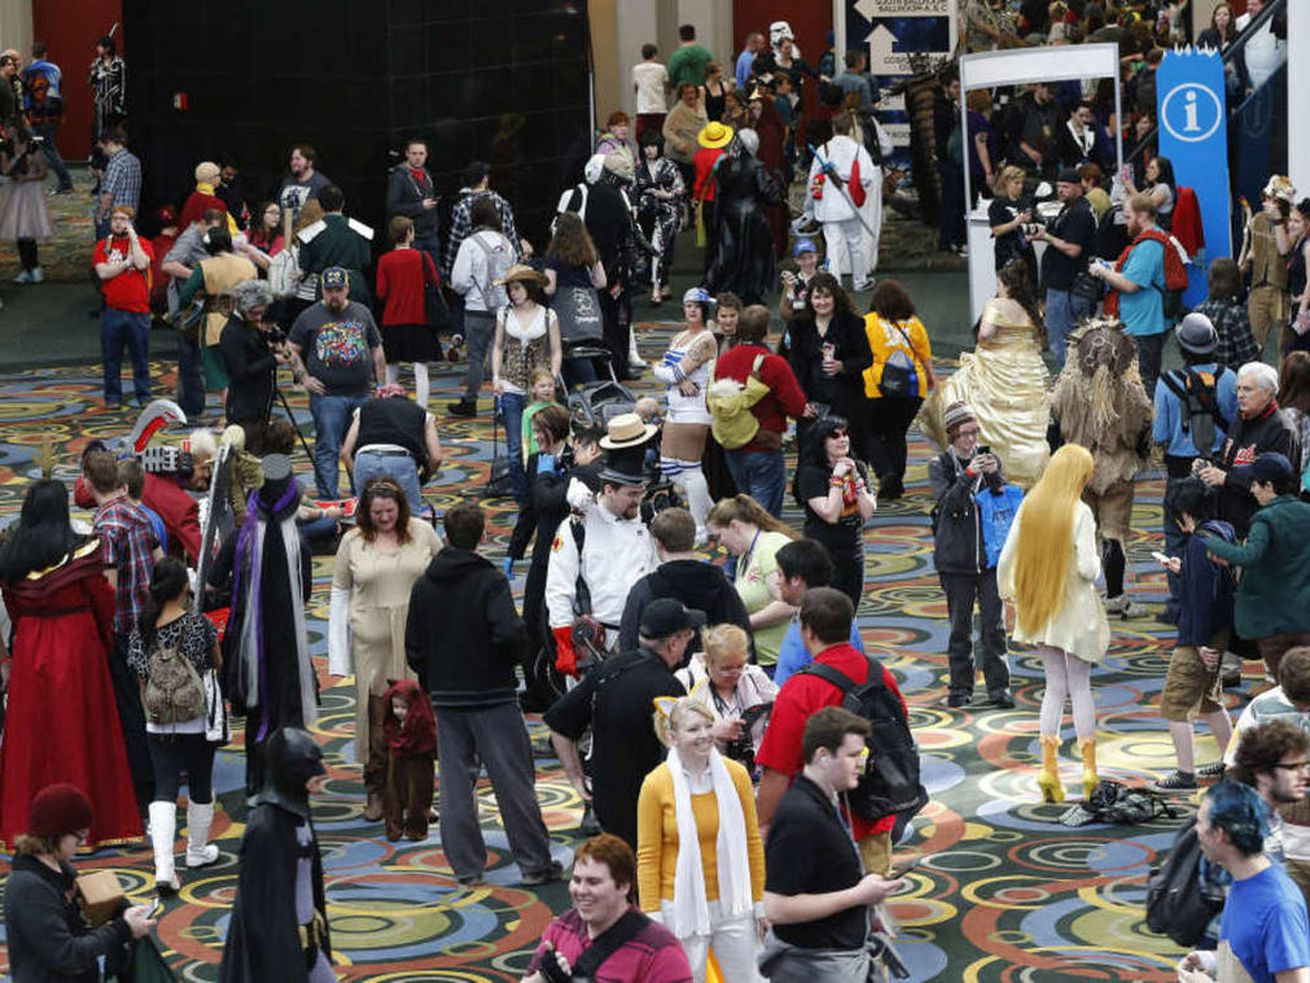 Fans attend Salt Lake Comic Con FanX at the Salt Palace in Salt Lake City Saturday, Jan. 31, 2015.